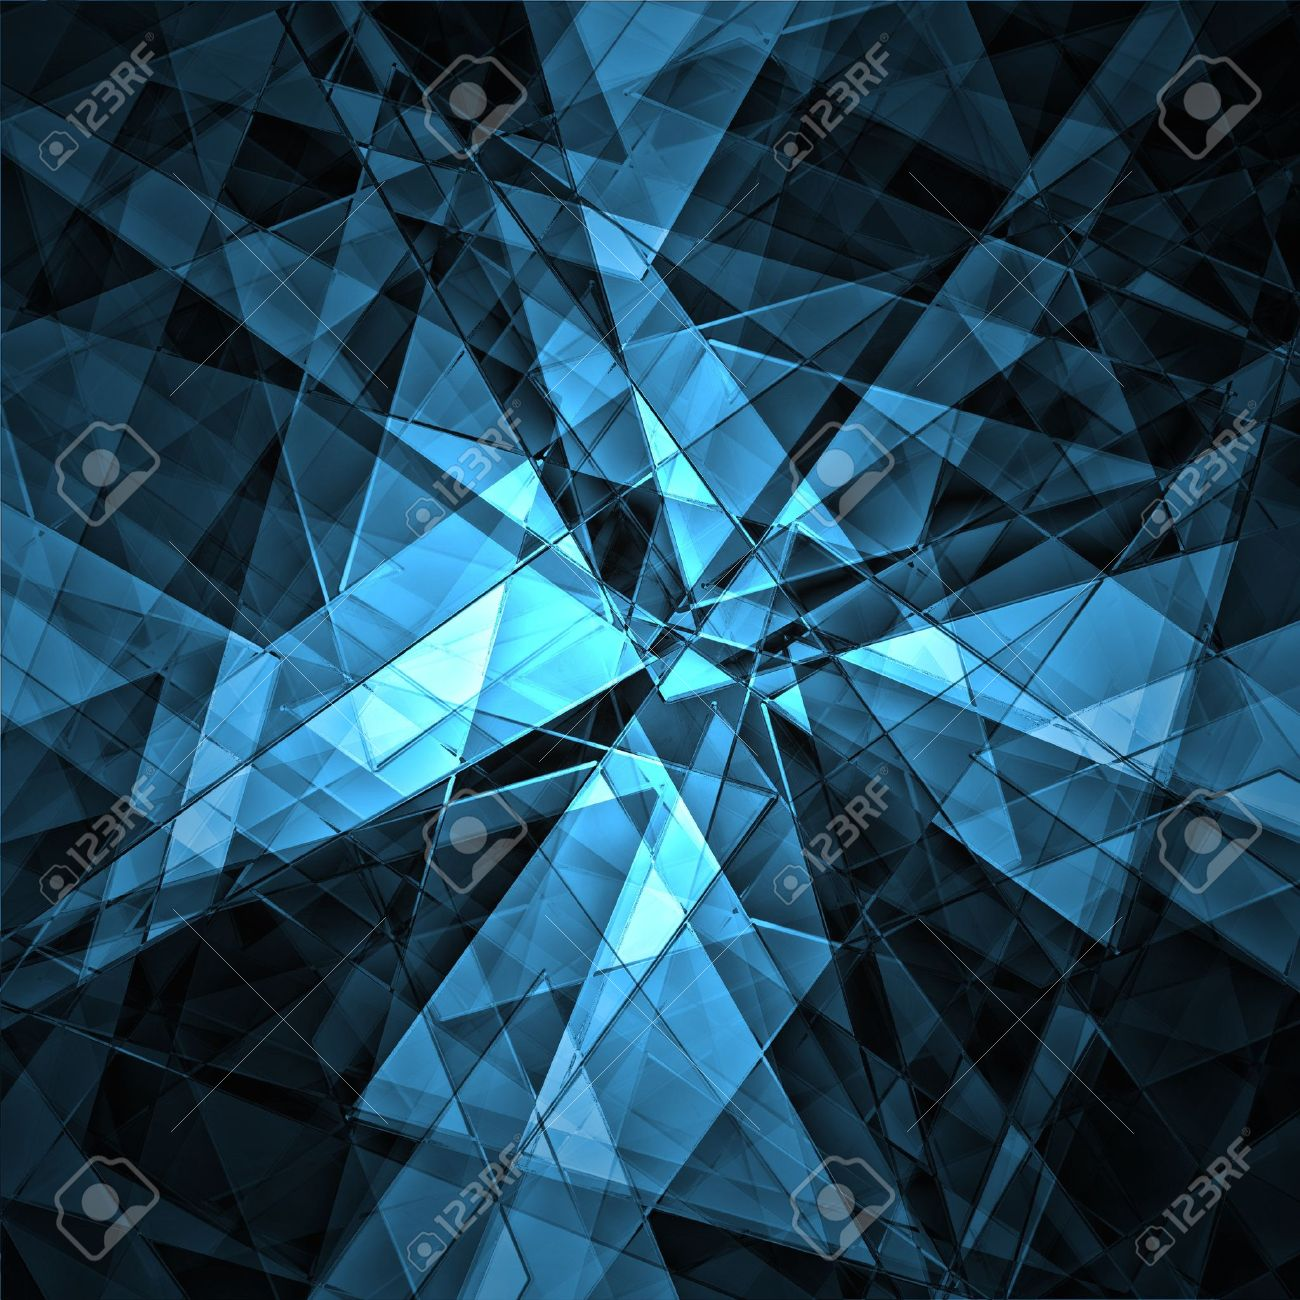 blue background design pattern